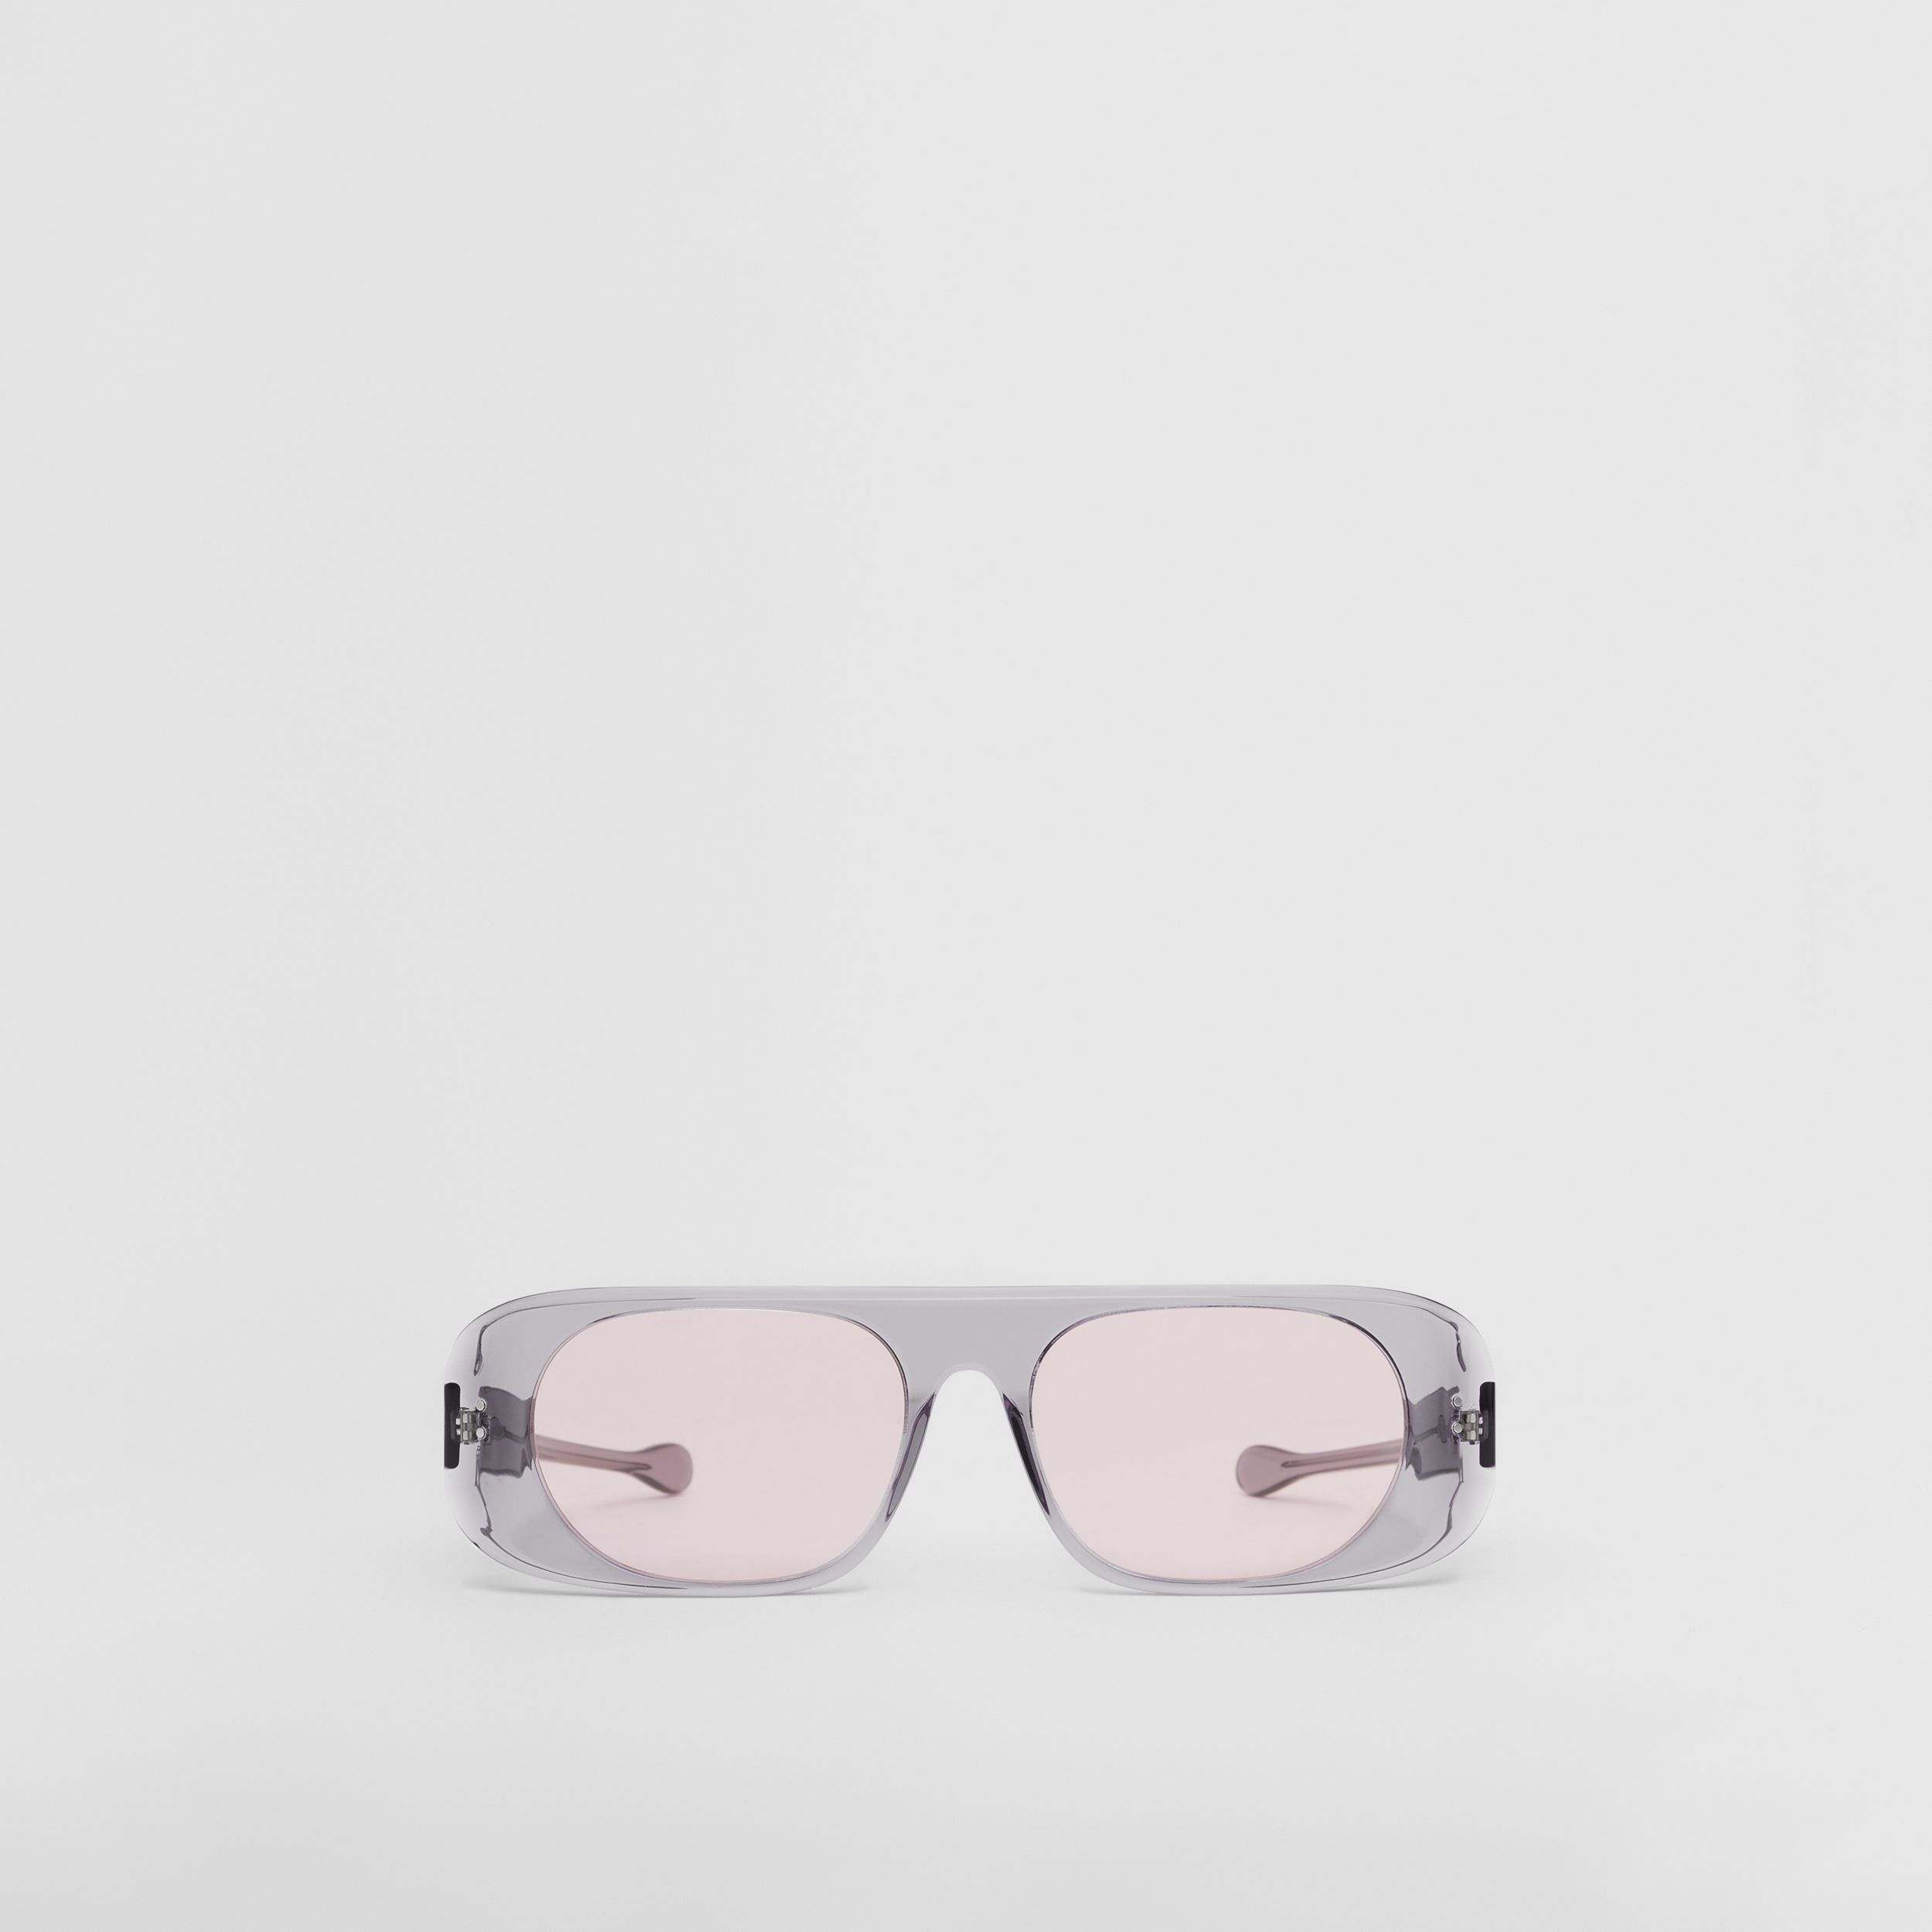 Blake Sunglasses in Transparent Grey | Burberry - 1